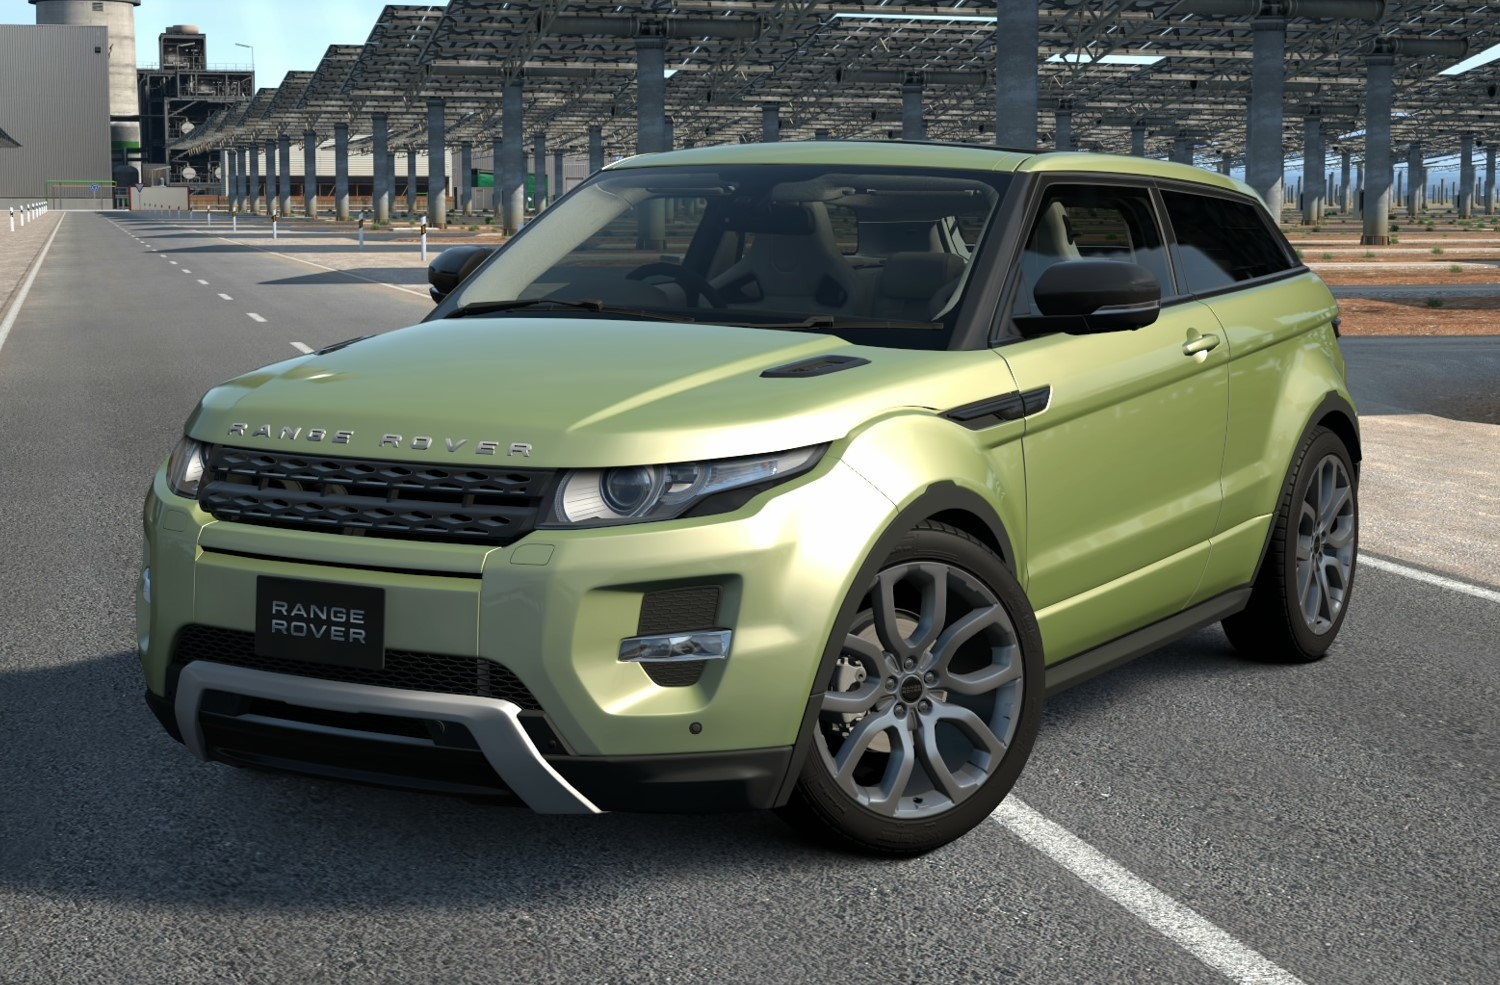 land rover range rover evoque coupe dynamic 39 13 gran turismo wiki fandom powered by wikia. Black Bedroom Furniture Sets. Home Design Ideas